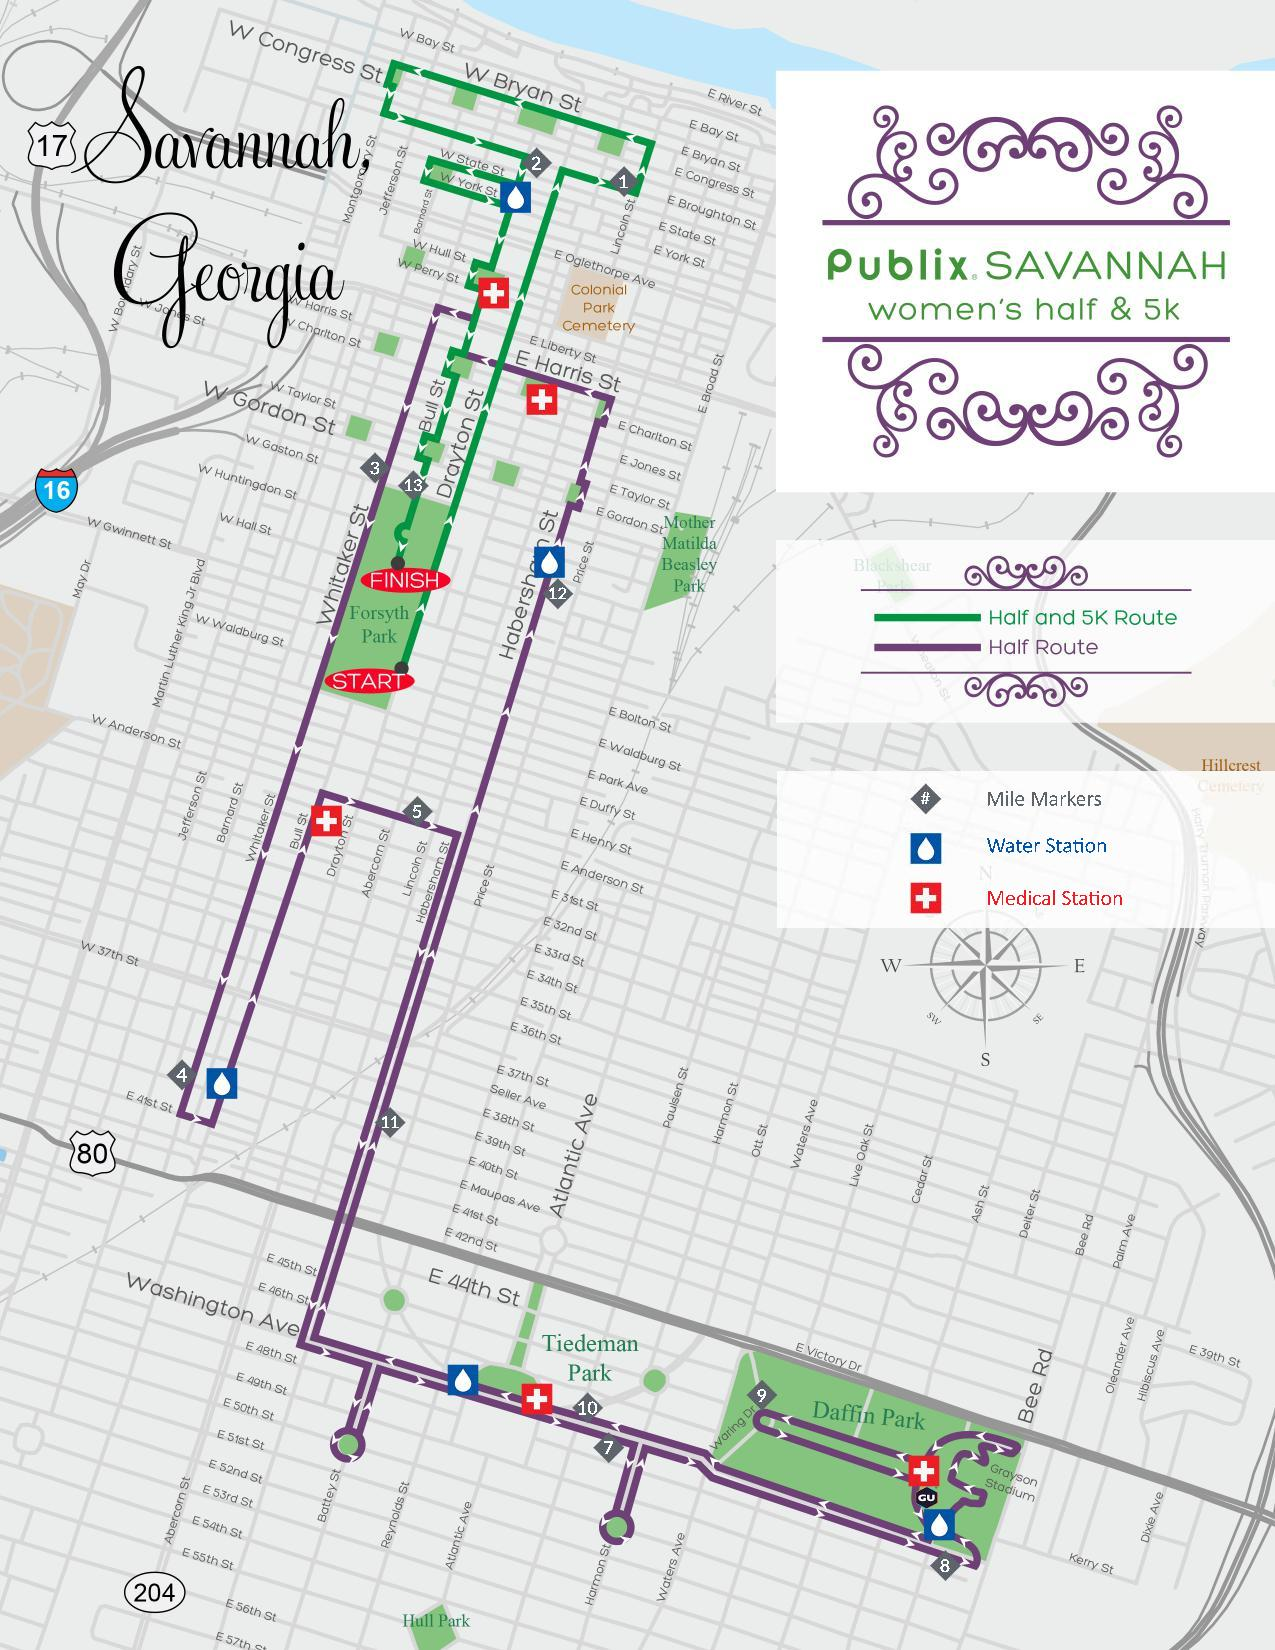 Race will affect Traffic in Downtown Savannah this Saay ... Map Of Bee Street on map of coyotes, map of giraffes, map of butterfly, map of bulls, map of swans, map of fruit, map of caribou, map of food, map of mosquitoes, map of people, map of wasp, map of firebrats, map of turtles, map of halloween, map of peacocks, map of hornets, map of salt, map of possums, map of art, map of ladybugs,